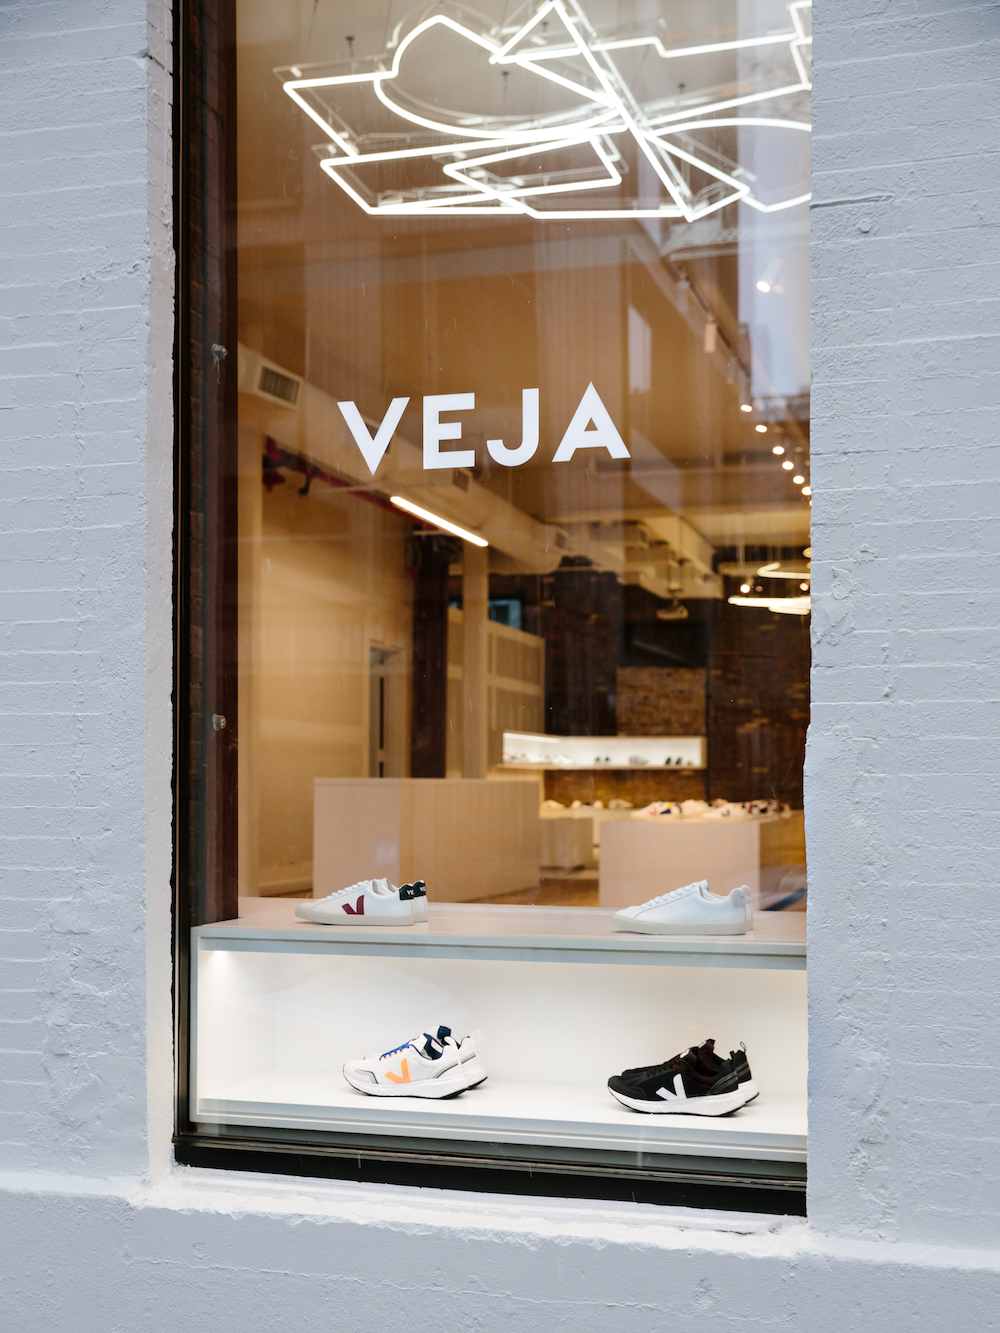 Veja, the sustainable French footwear brand loved by Meghan Markle, is inaugurating a flagship store in New York's Nolita neighborhood.